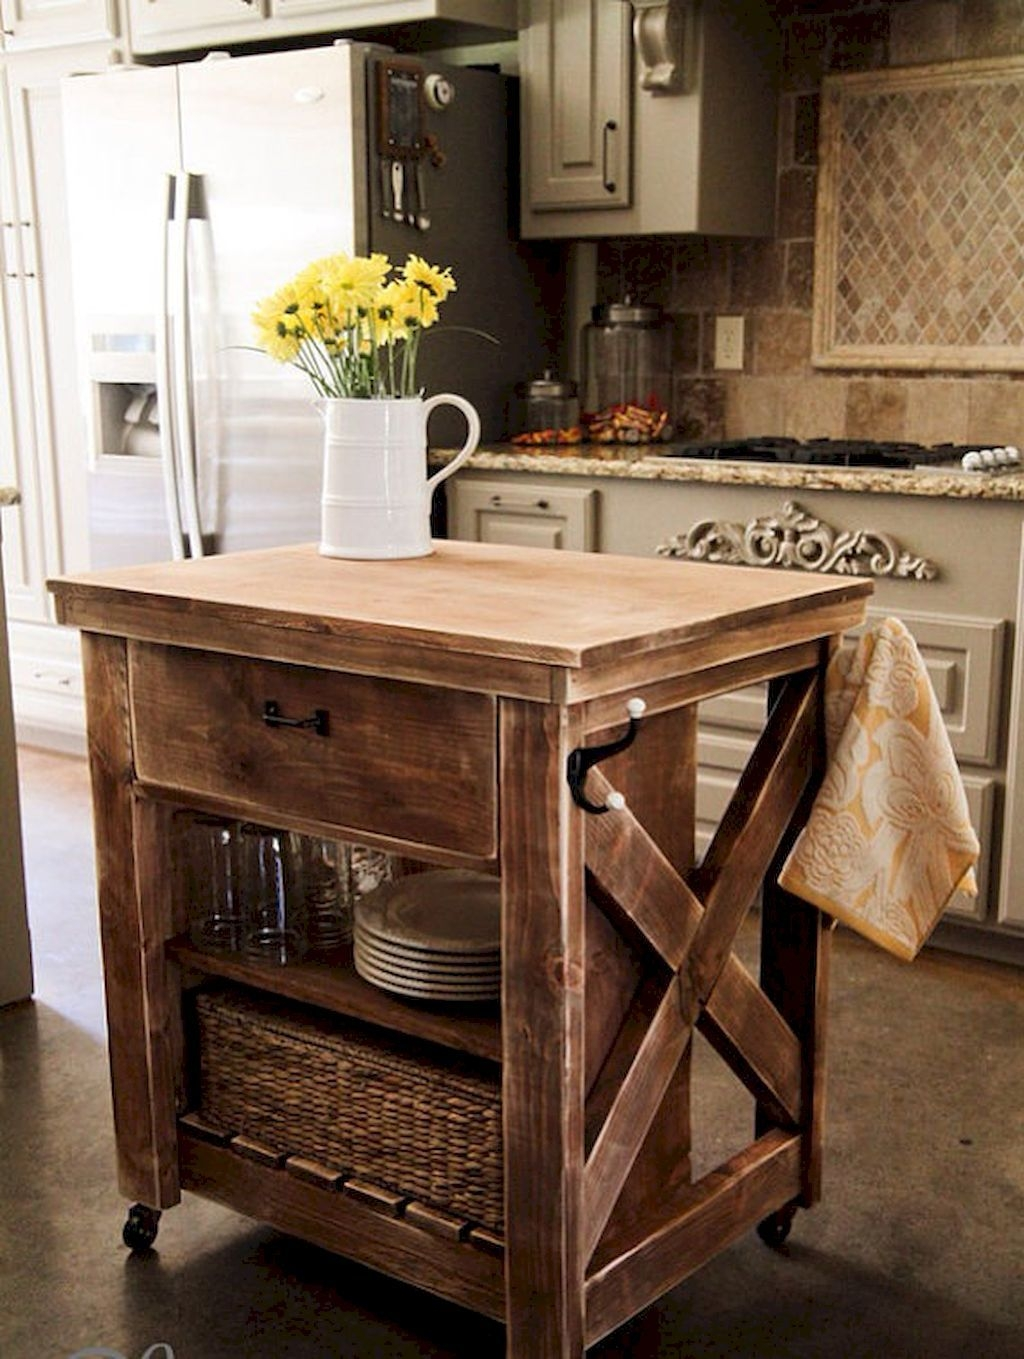 kitchen cart table las vegas hotels with rustic microwave ideas on foter